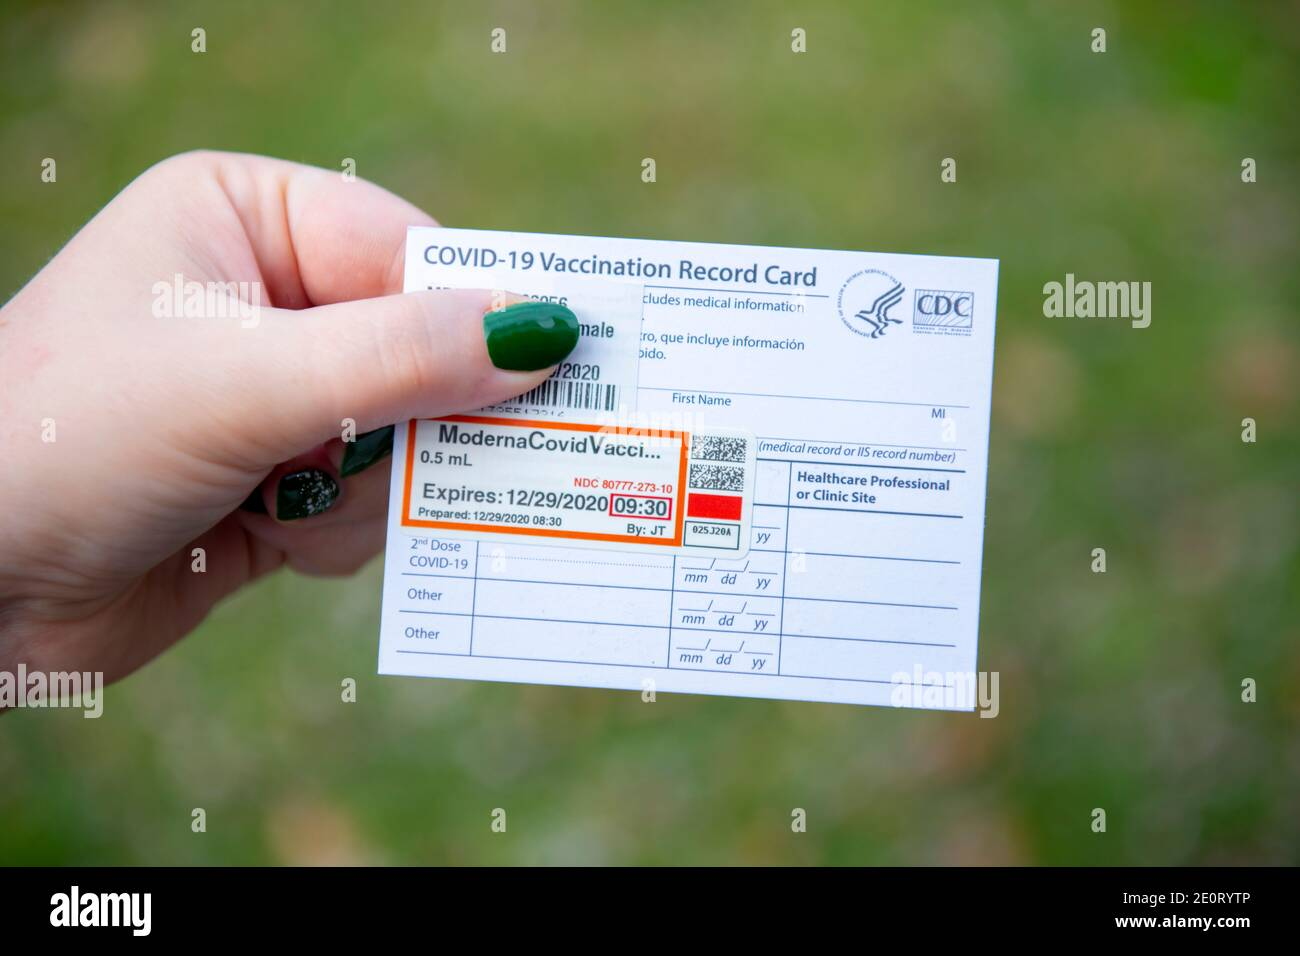 woman-holding-a-covid-19-moderna-vaccine-card-for-proof-of-the-first-dose-issued-by-the-cdc-usa-government-2E0RYTP.jpg